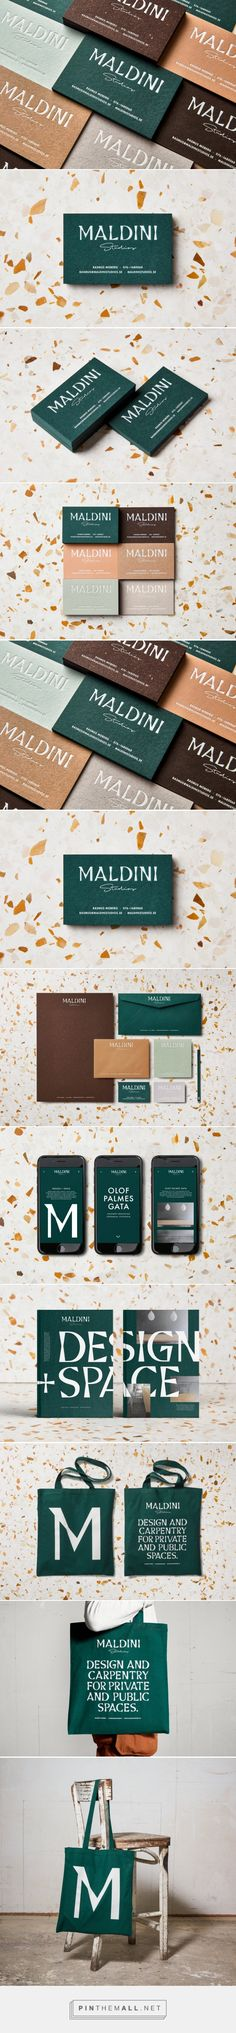 Maldini Studios Interior Design Branding by Jens Nilsson | Fivestar Branding Agency – Design and Branding Agency & Curated Inspiration Gallery  #interiordesignbranding #branding #brand #design #designinspiration